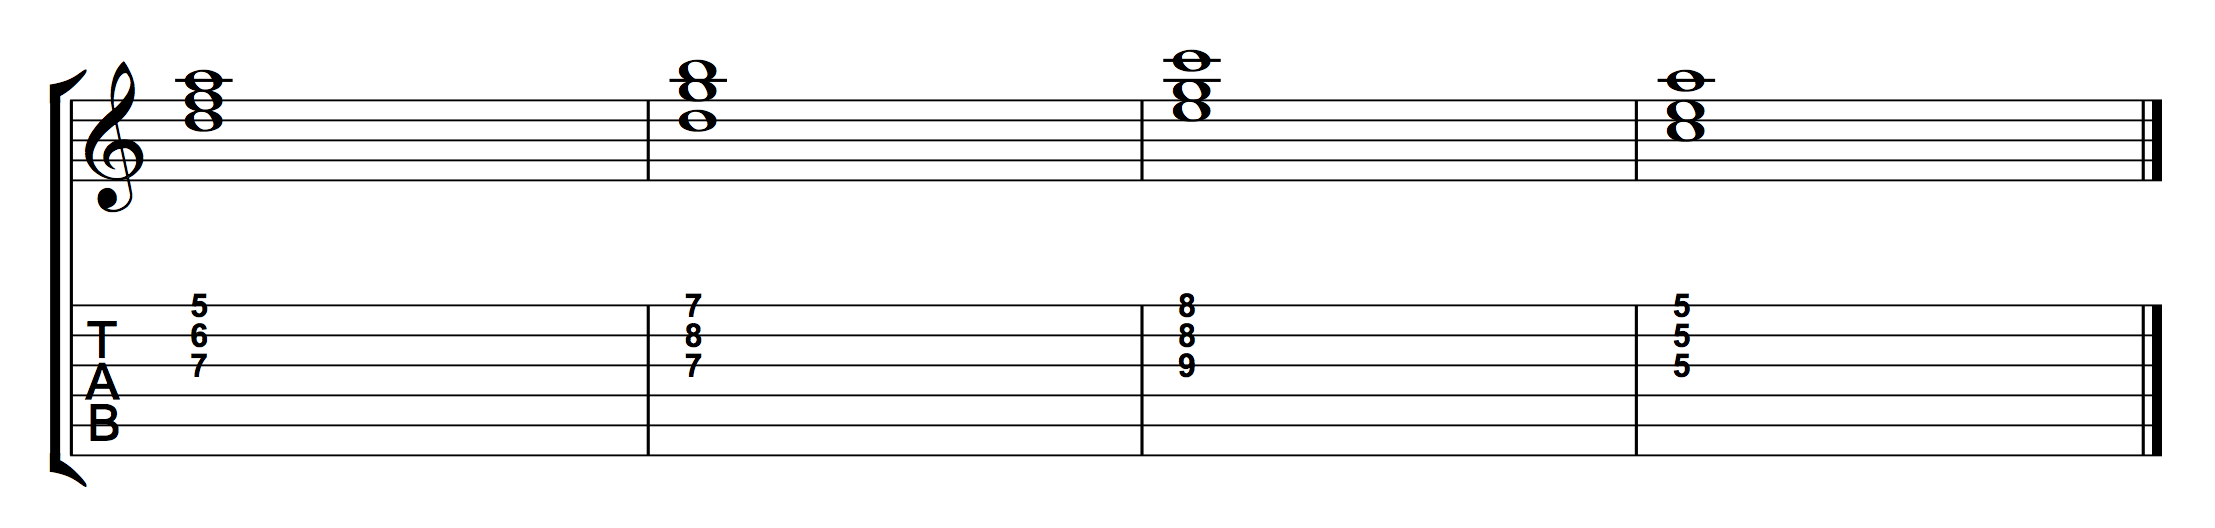 Chord Progression Using 2nd Inversion Triads